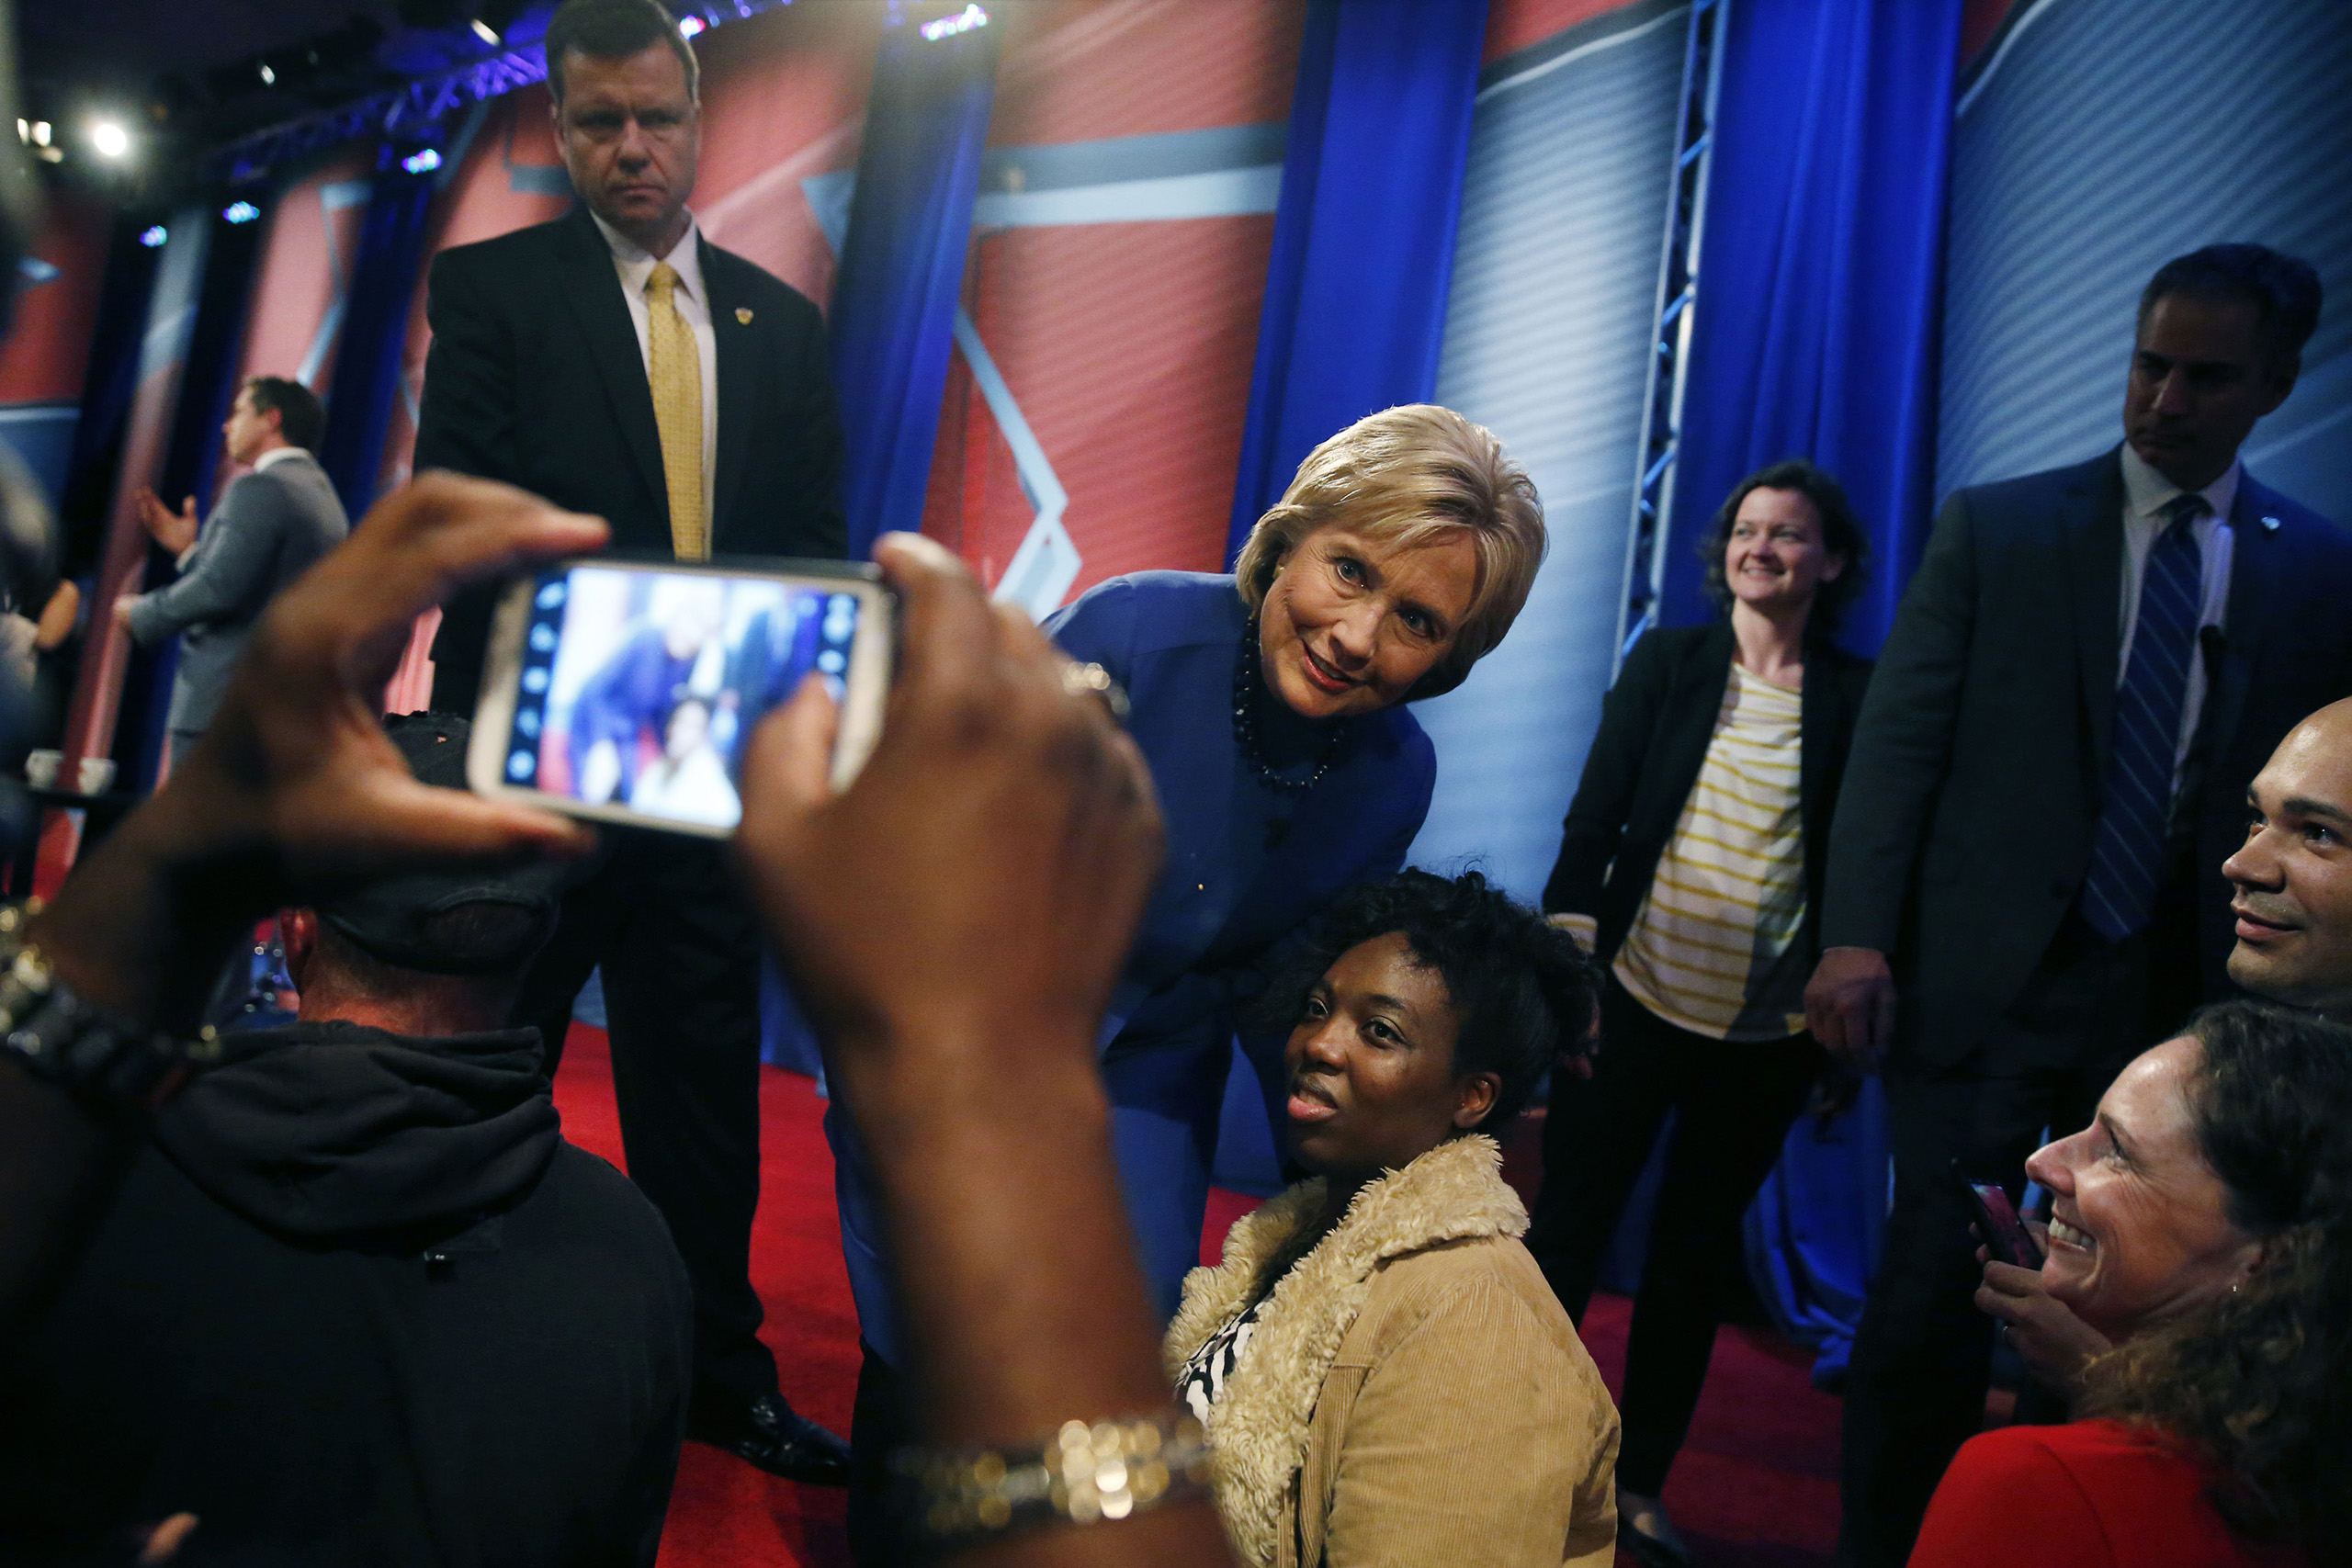 Democratic presidential candidate Hillary Clinton poses for photos with audience members after participating in a CNN town hall event at the University of South Carolina School of Law in Columbia, Feb. 23, 2016.